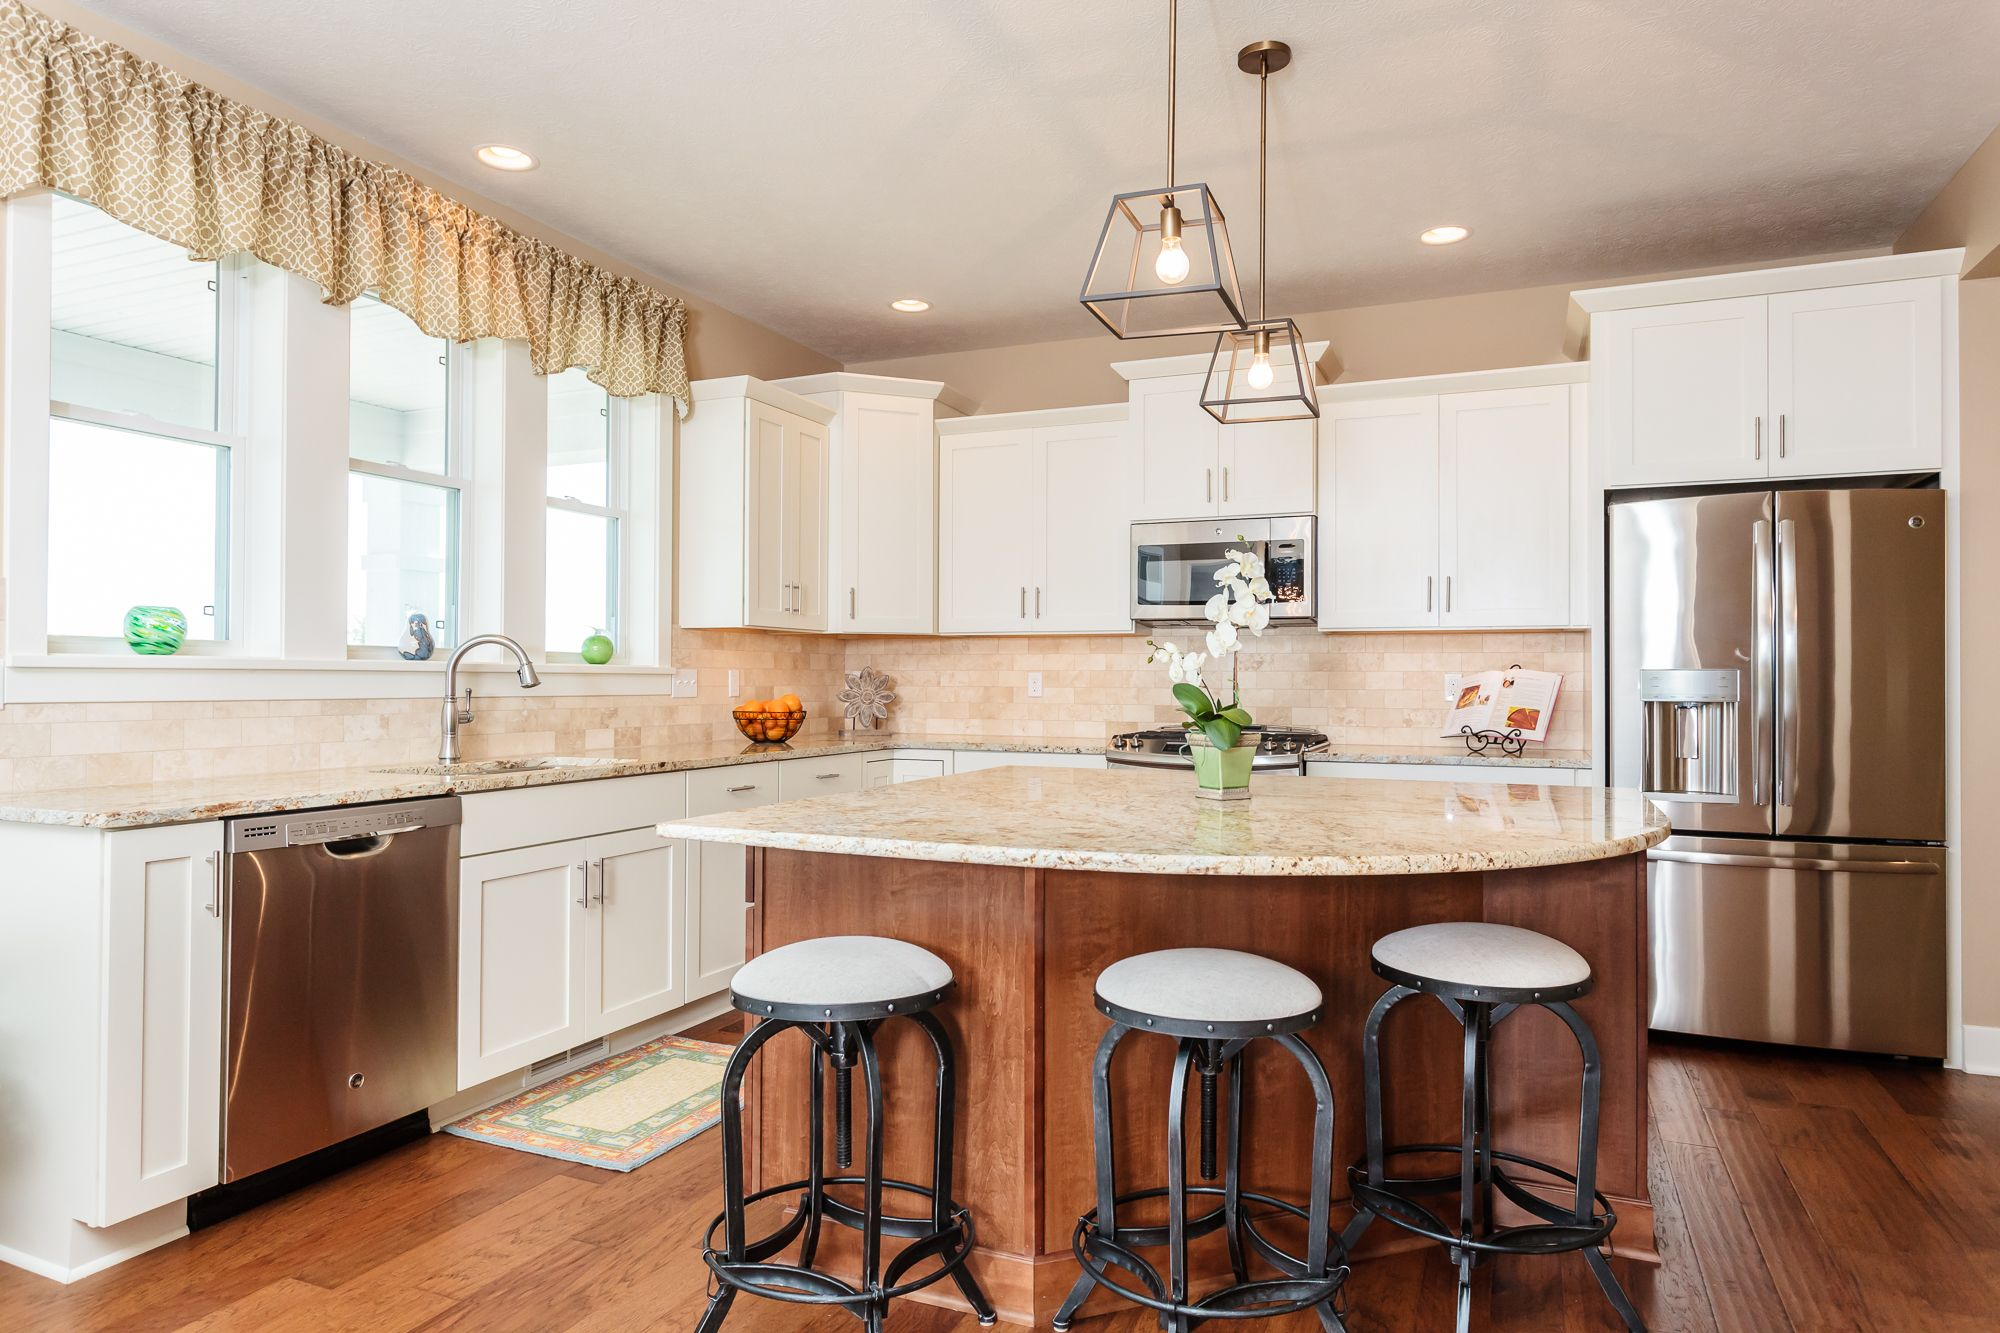 Kitchen featured in The Lexington By Riedman Homes in Rochester, NY